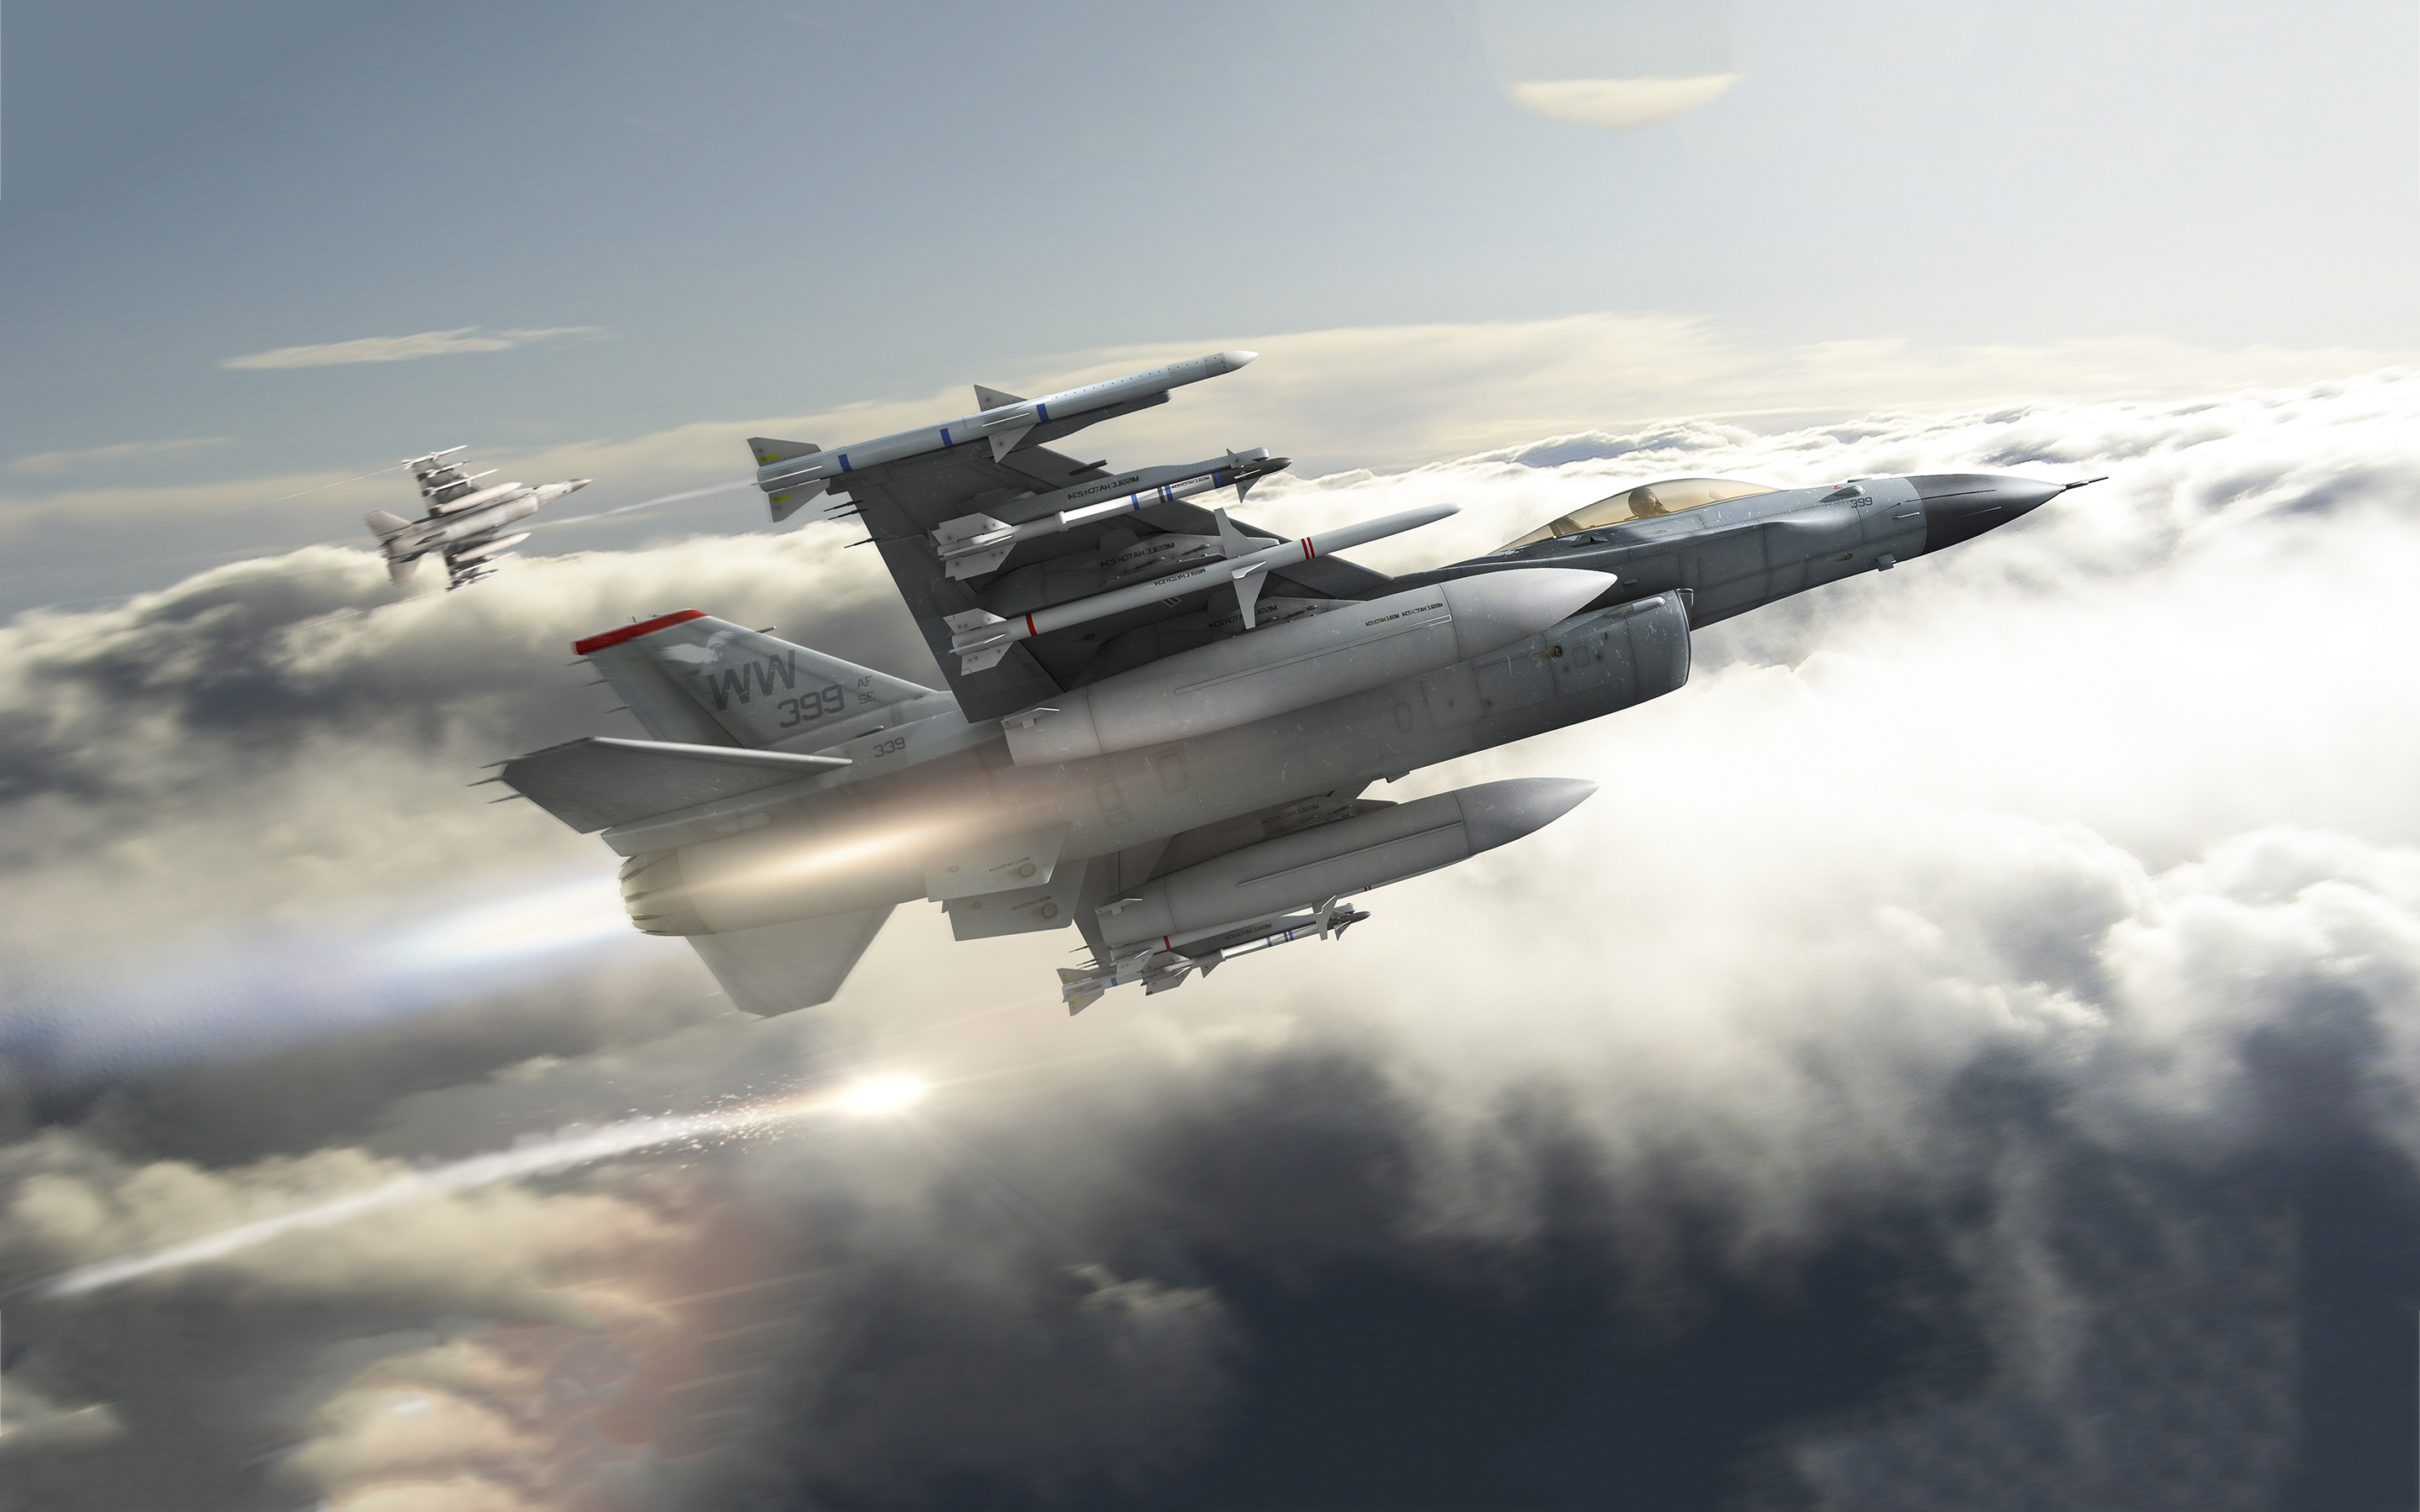 Armed f16 jets